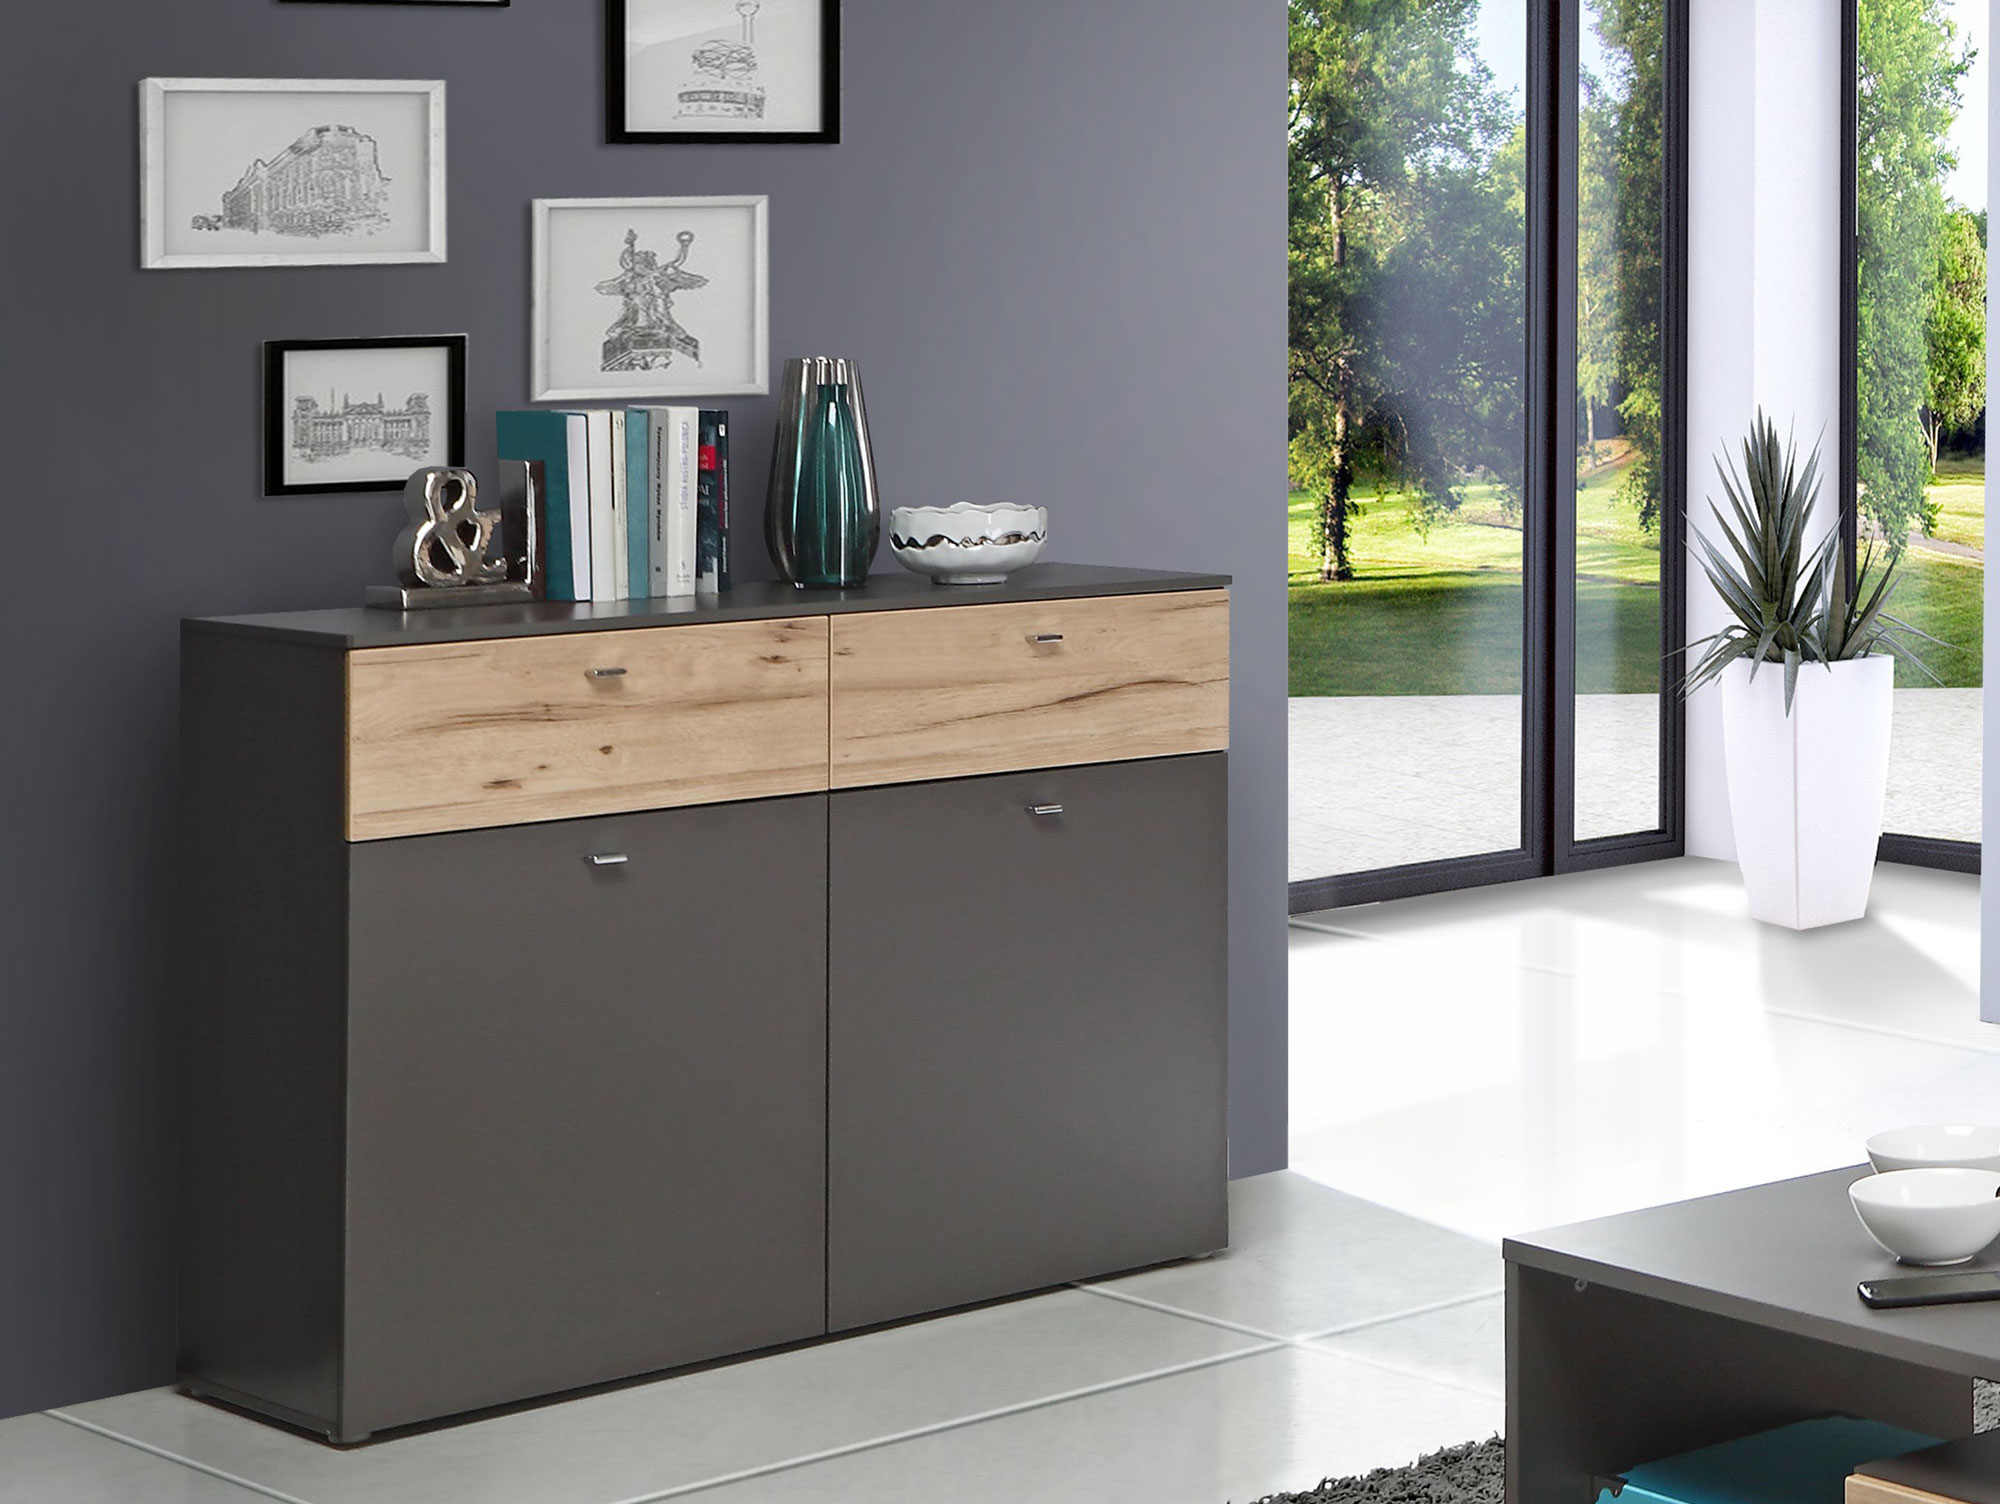 clara kommode mit 2 t ren wolfram grau planked eiche. Black Bedroom Furniture Sets. Home Design Ideas